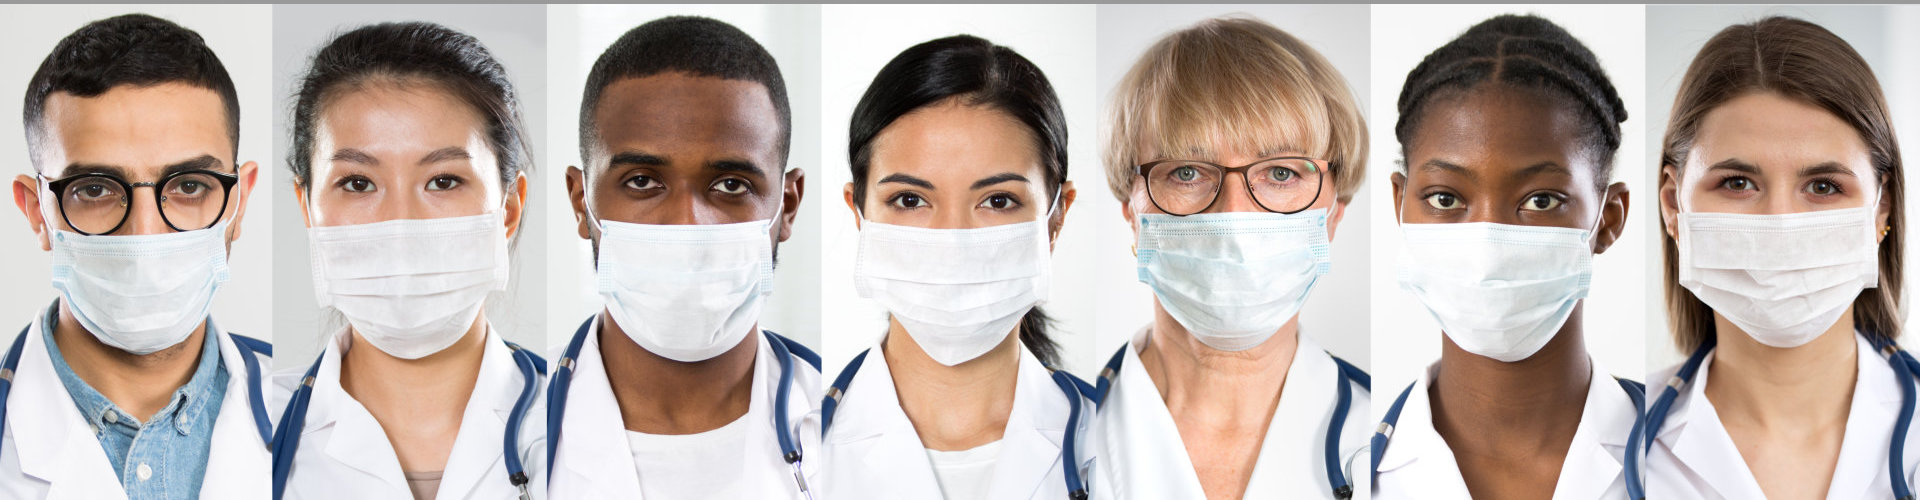 Coronavirus Pandemic. A set of portraits team of doctors of different nationalities and ages in medical masks.